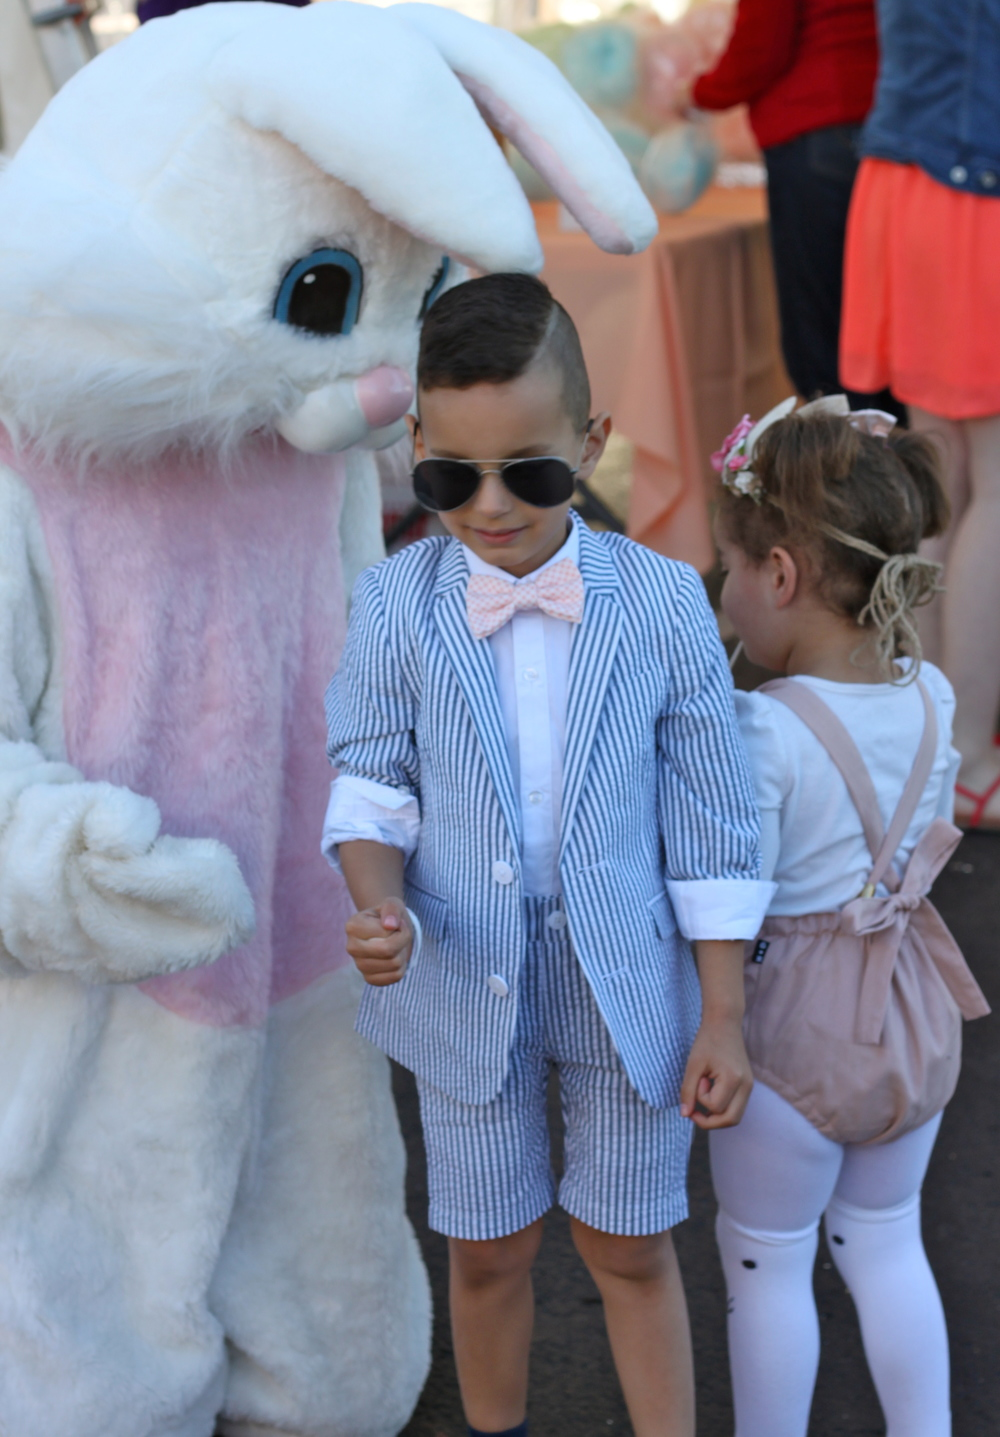 Pretty cheesy bunny, but kids love him right?